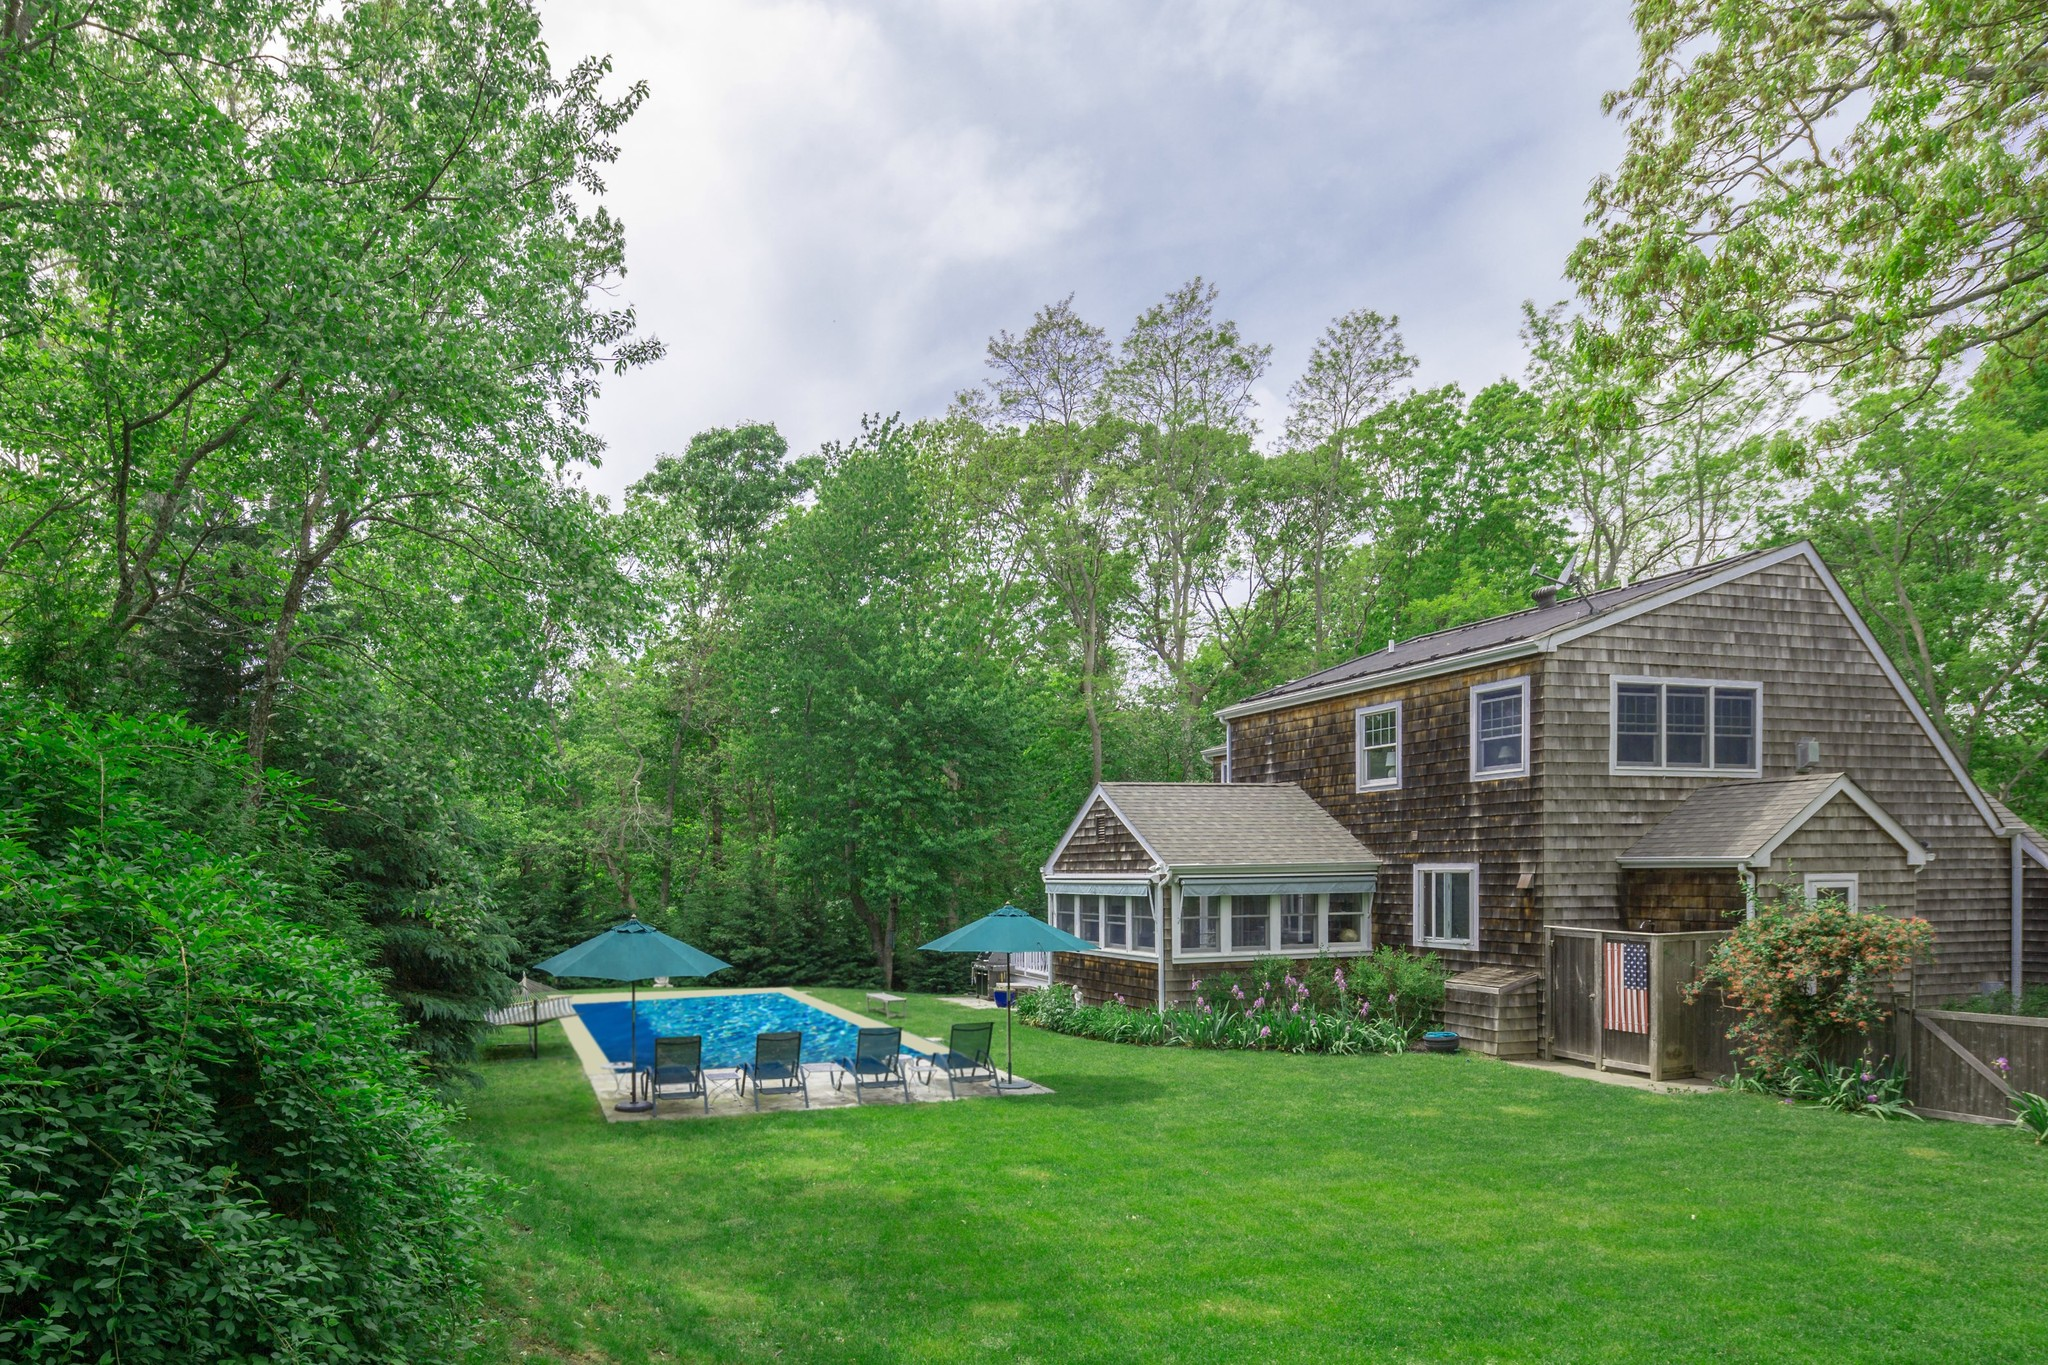 3-Bedroom House In North Haven